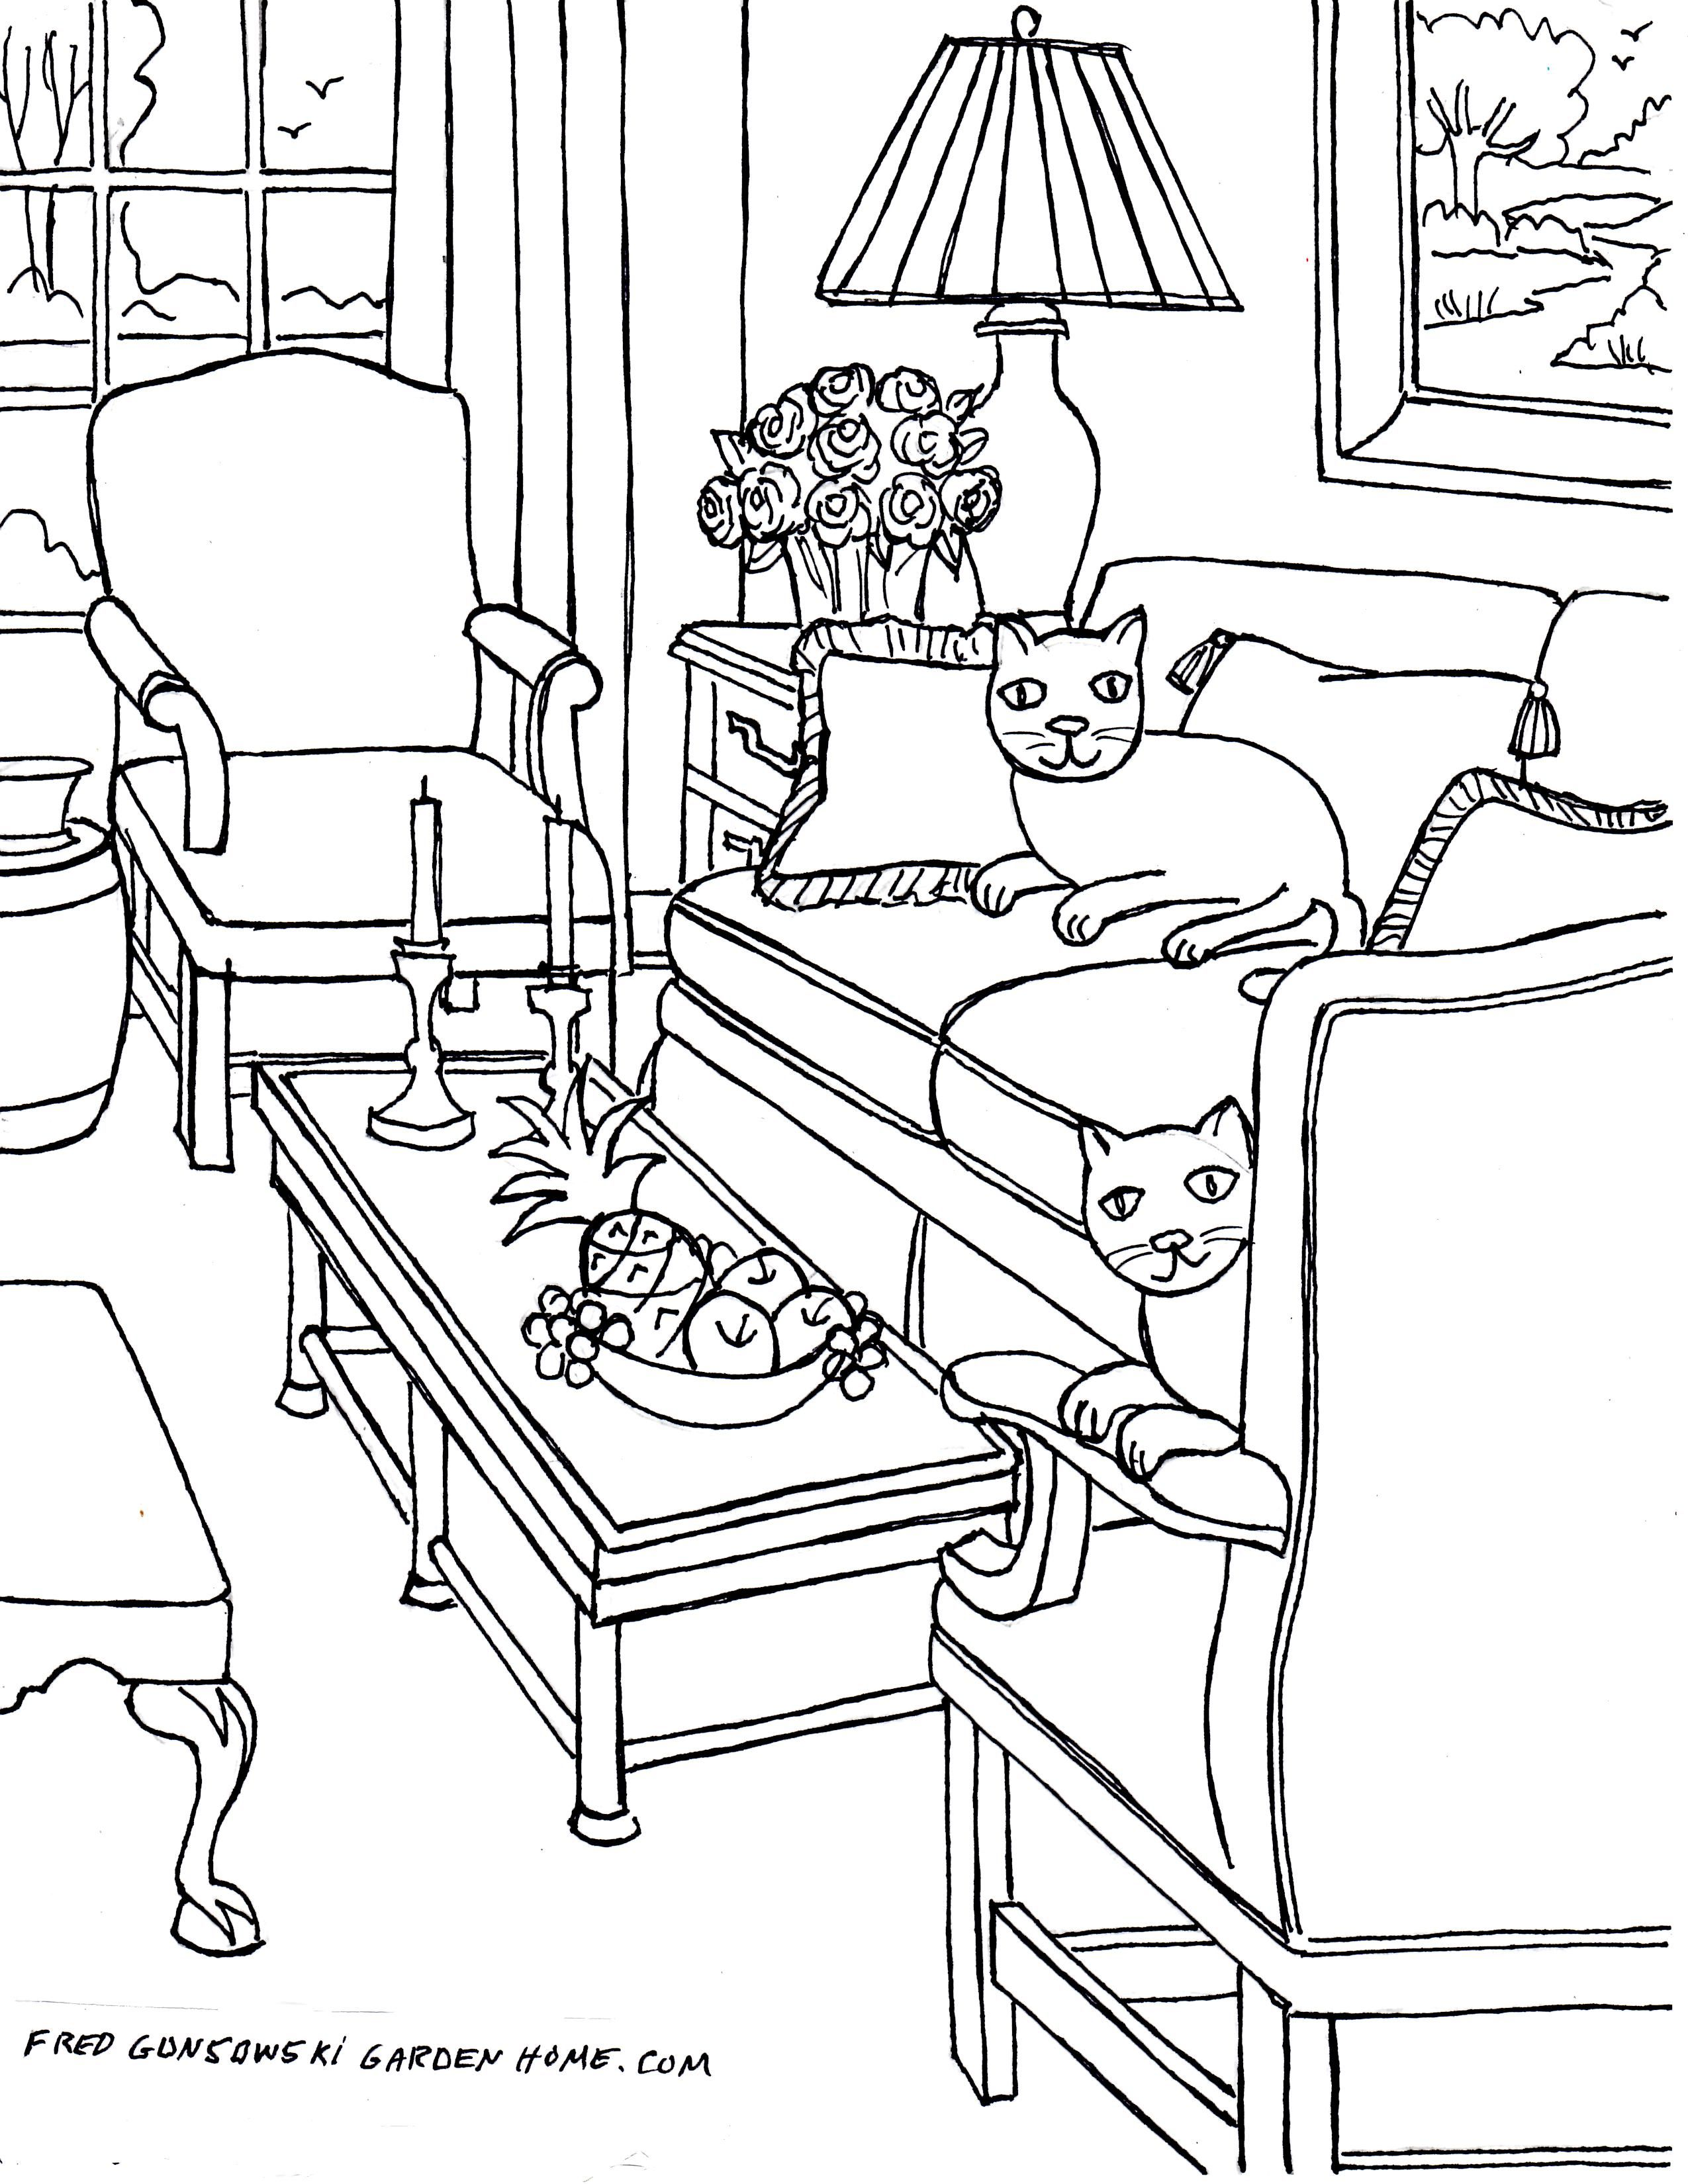 Coloring Pages For Adults Some Drawings Of Living Rooms For